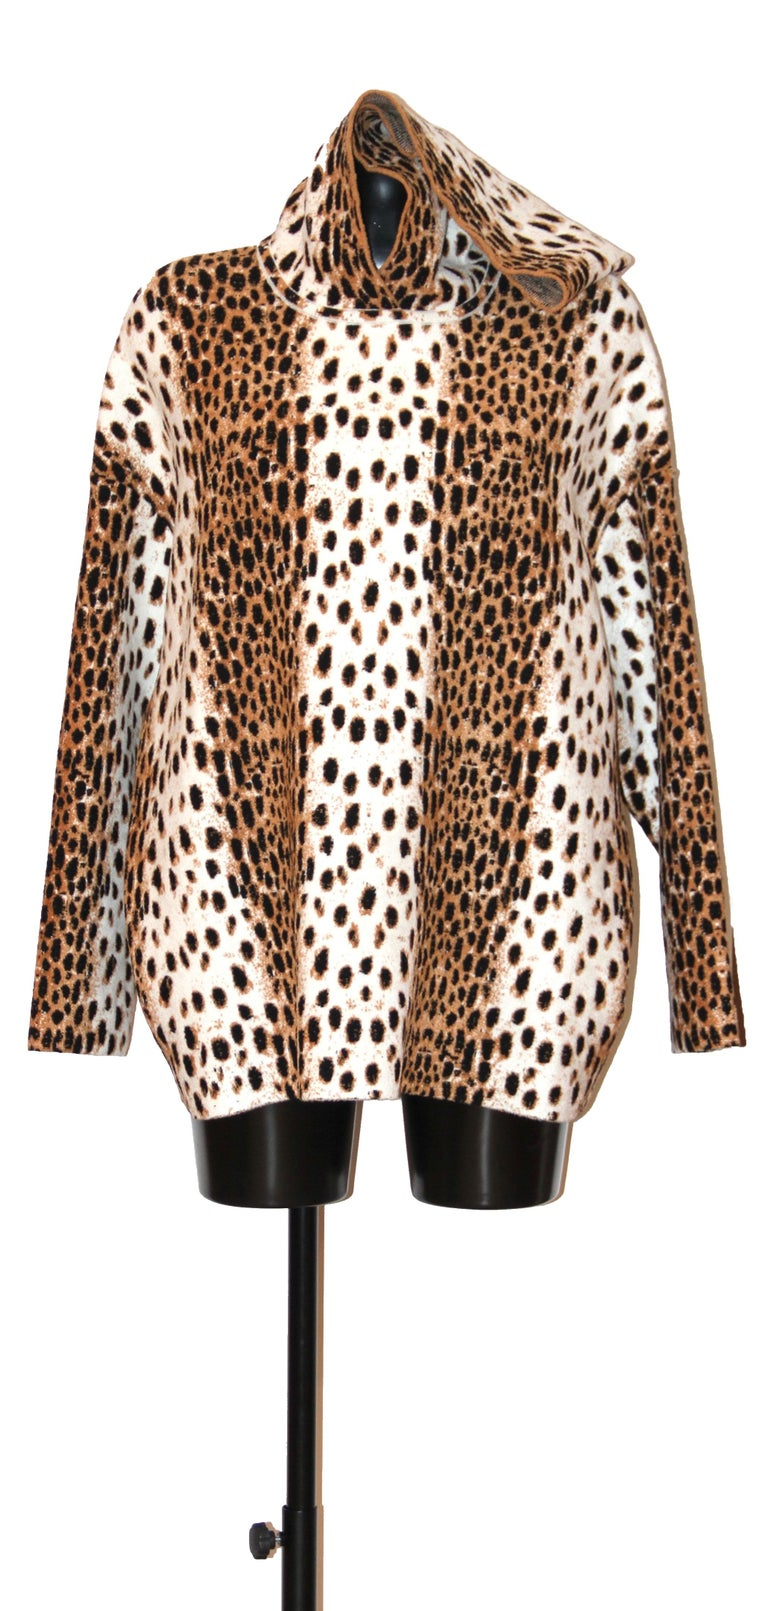 This pre-owned but New hooded sweatshirt from Azzedine Alaïa features a leopard motif print. The fabric mix is extremely soft to the touch. 40% Viscose 35% Polyamide 23% Wool 2% Elastane  Its size is 36 but oversize cut.  All items are subject to a